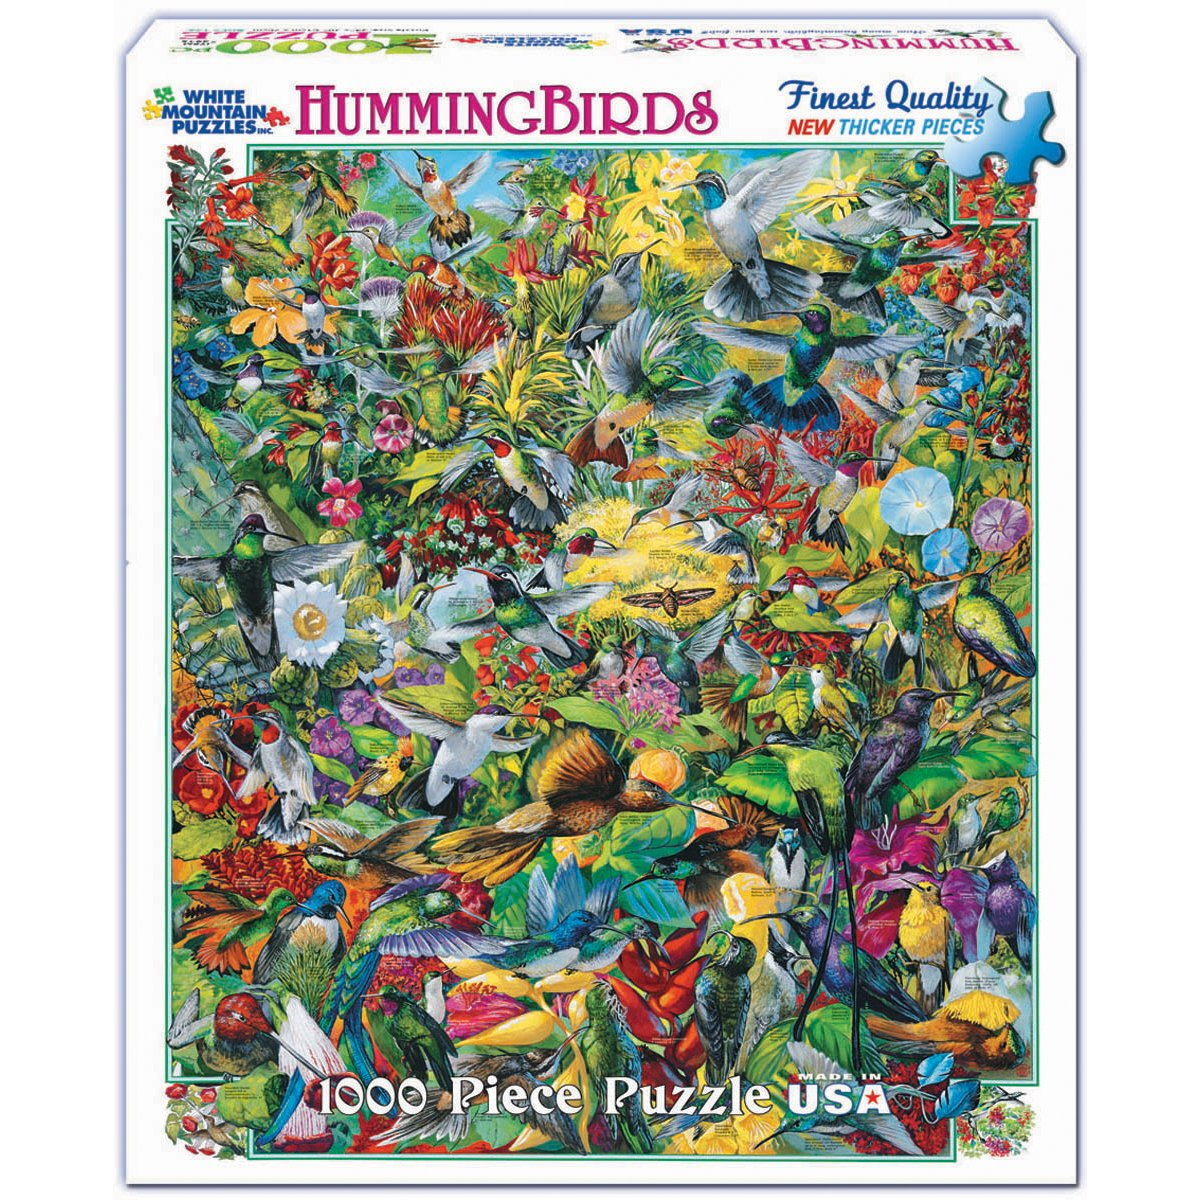 White Mountain Puzzles Hummingbirds - 1000 Piece Jigsaw Puzzle